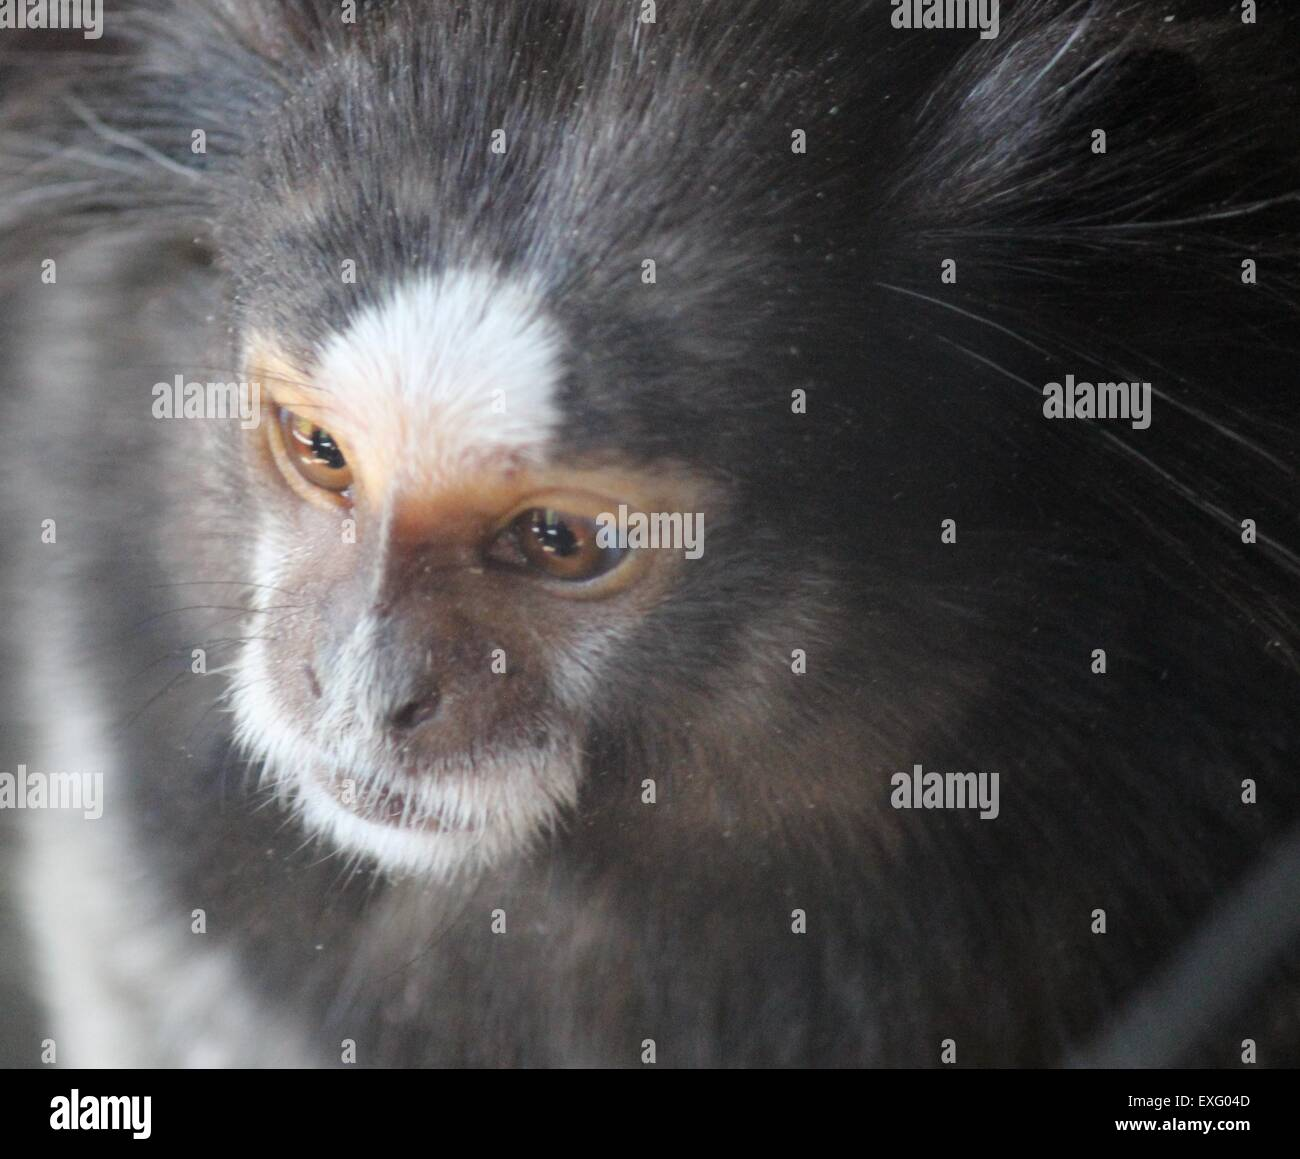 Capuchin monkey. Stock Photo